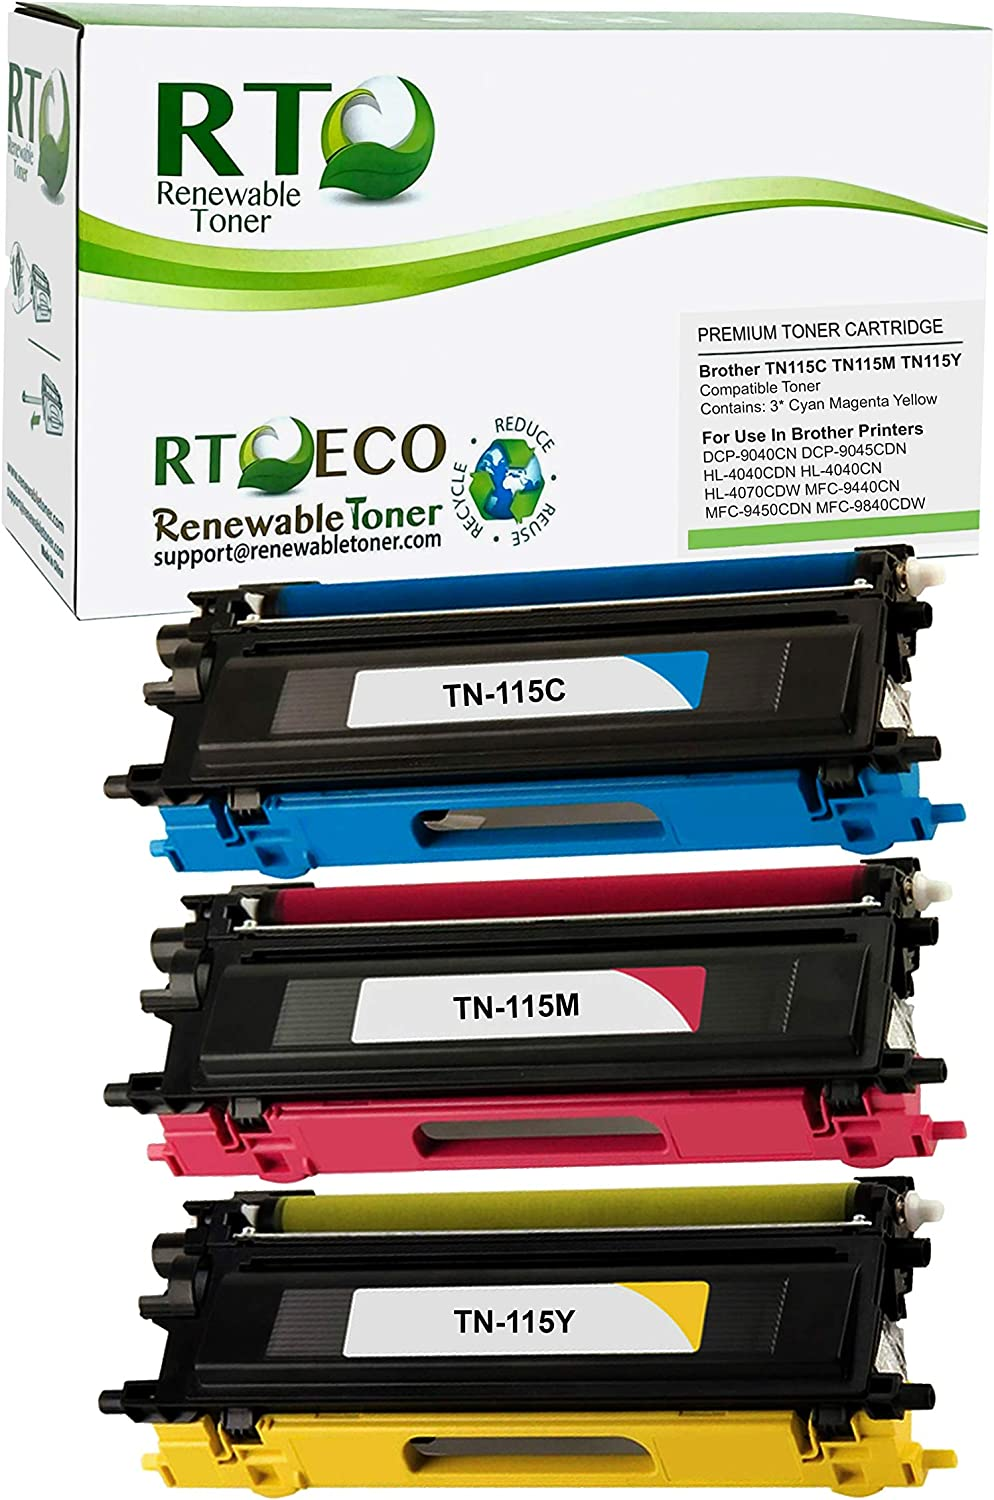 Renewable Toner Compatible Toner Cartridge Replacement for Brother TN-115C TN-115M TN-115Y TN-115 DCP-9040 DCP-9045 HL-4040 HL-4040 HL-4070 MFC-9440 MFC-9450 MFC-9840 (Cyan, Magenta, Yellow, 3-Pack)